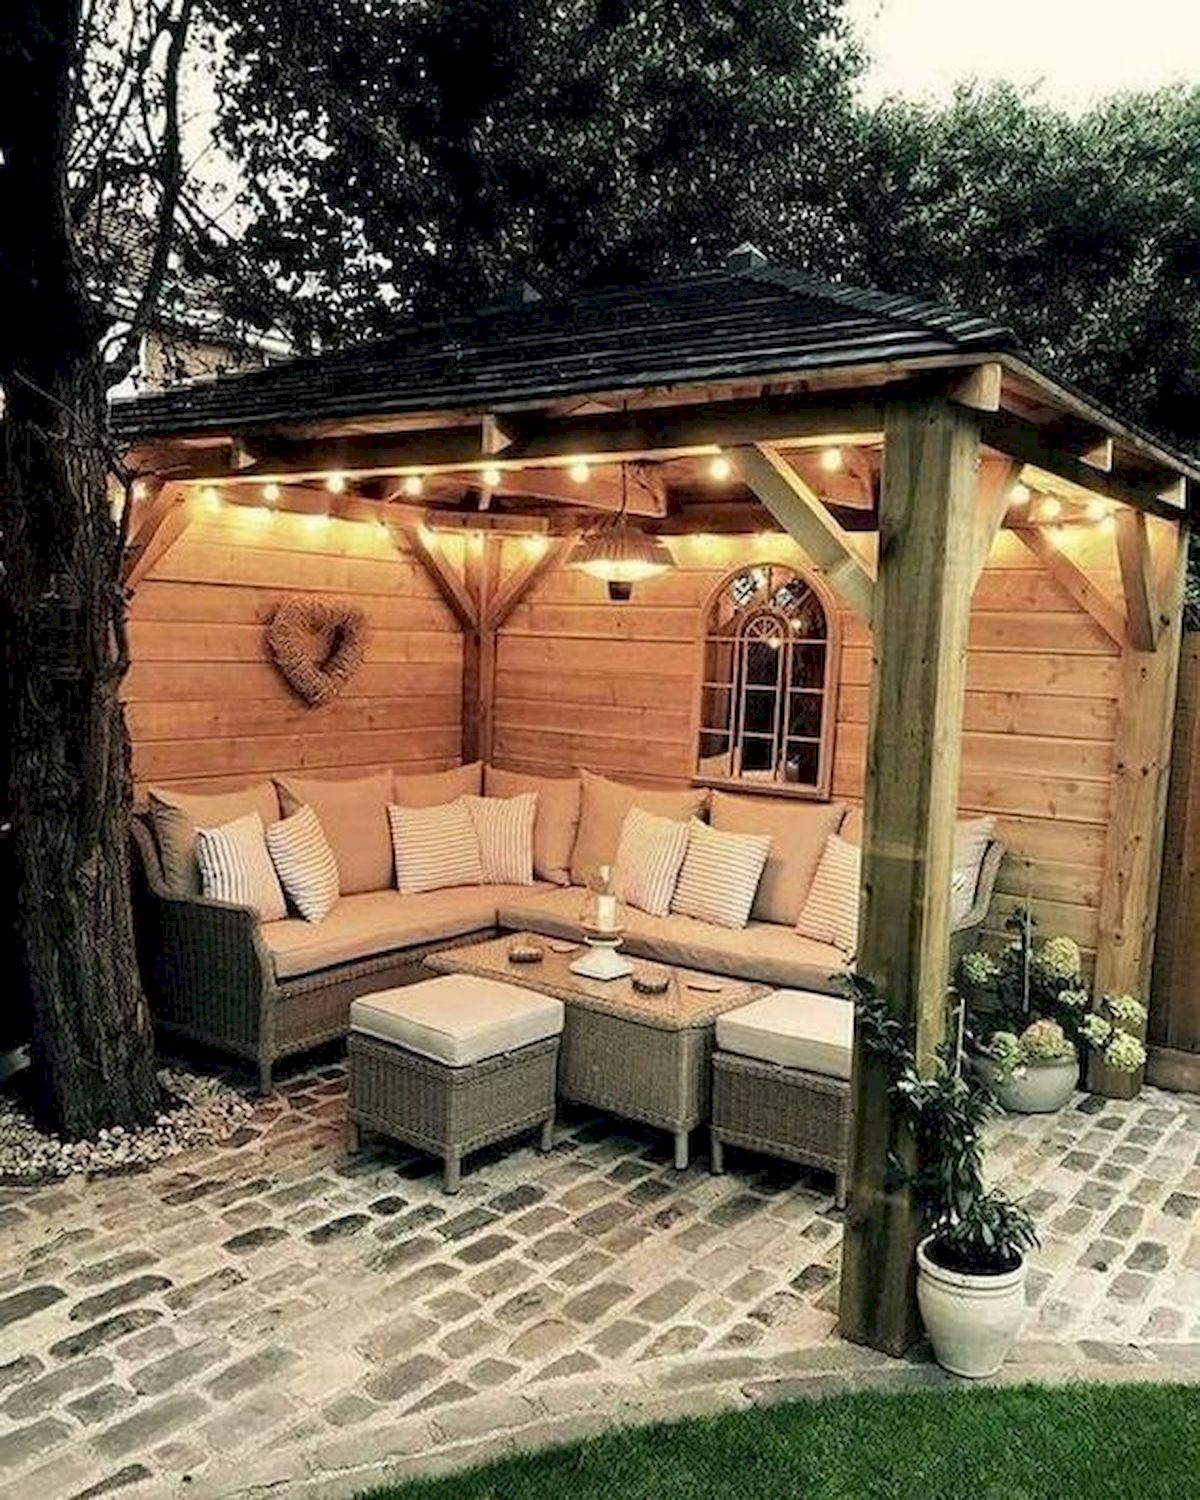 55 Fantastic Pergola Patio Design Ideas 12 Ideaboz